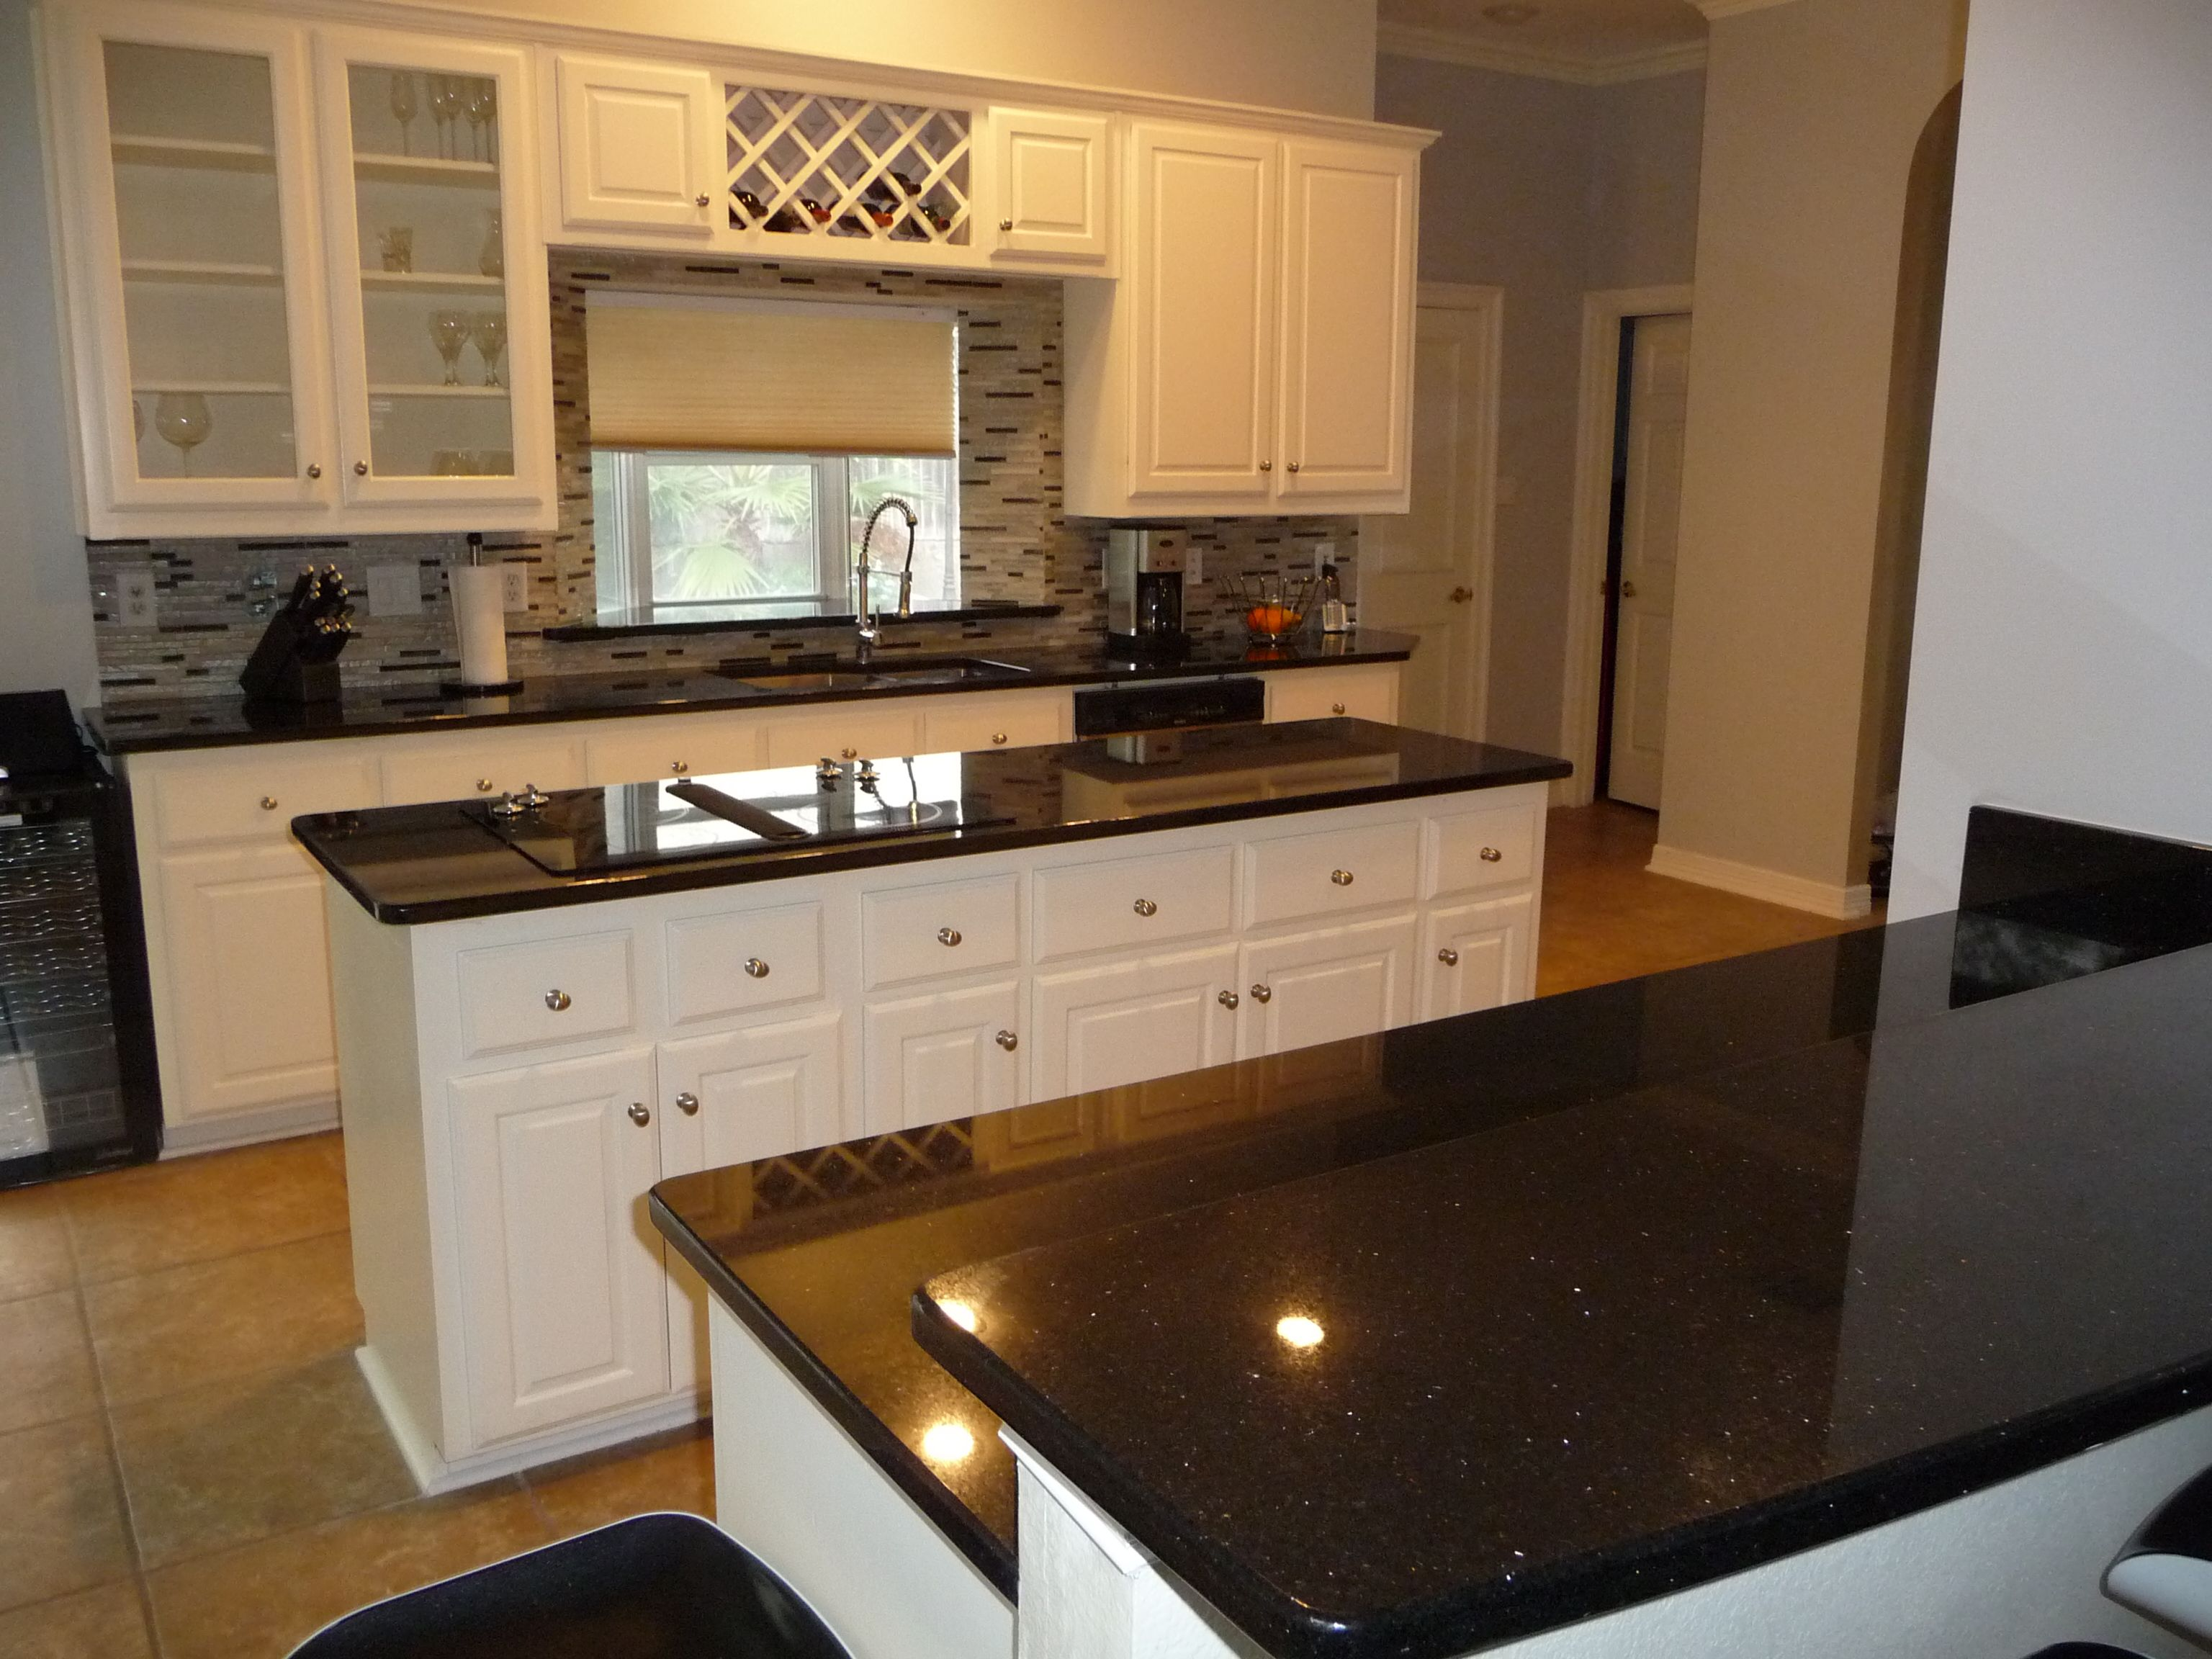 Black Galaxy Granite Countertops With White Painted Cabinets